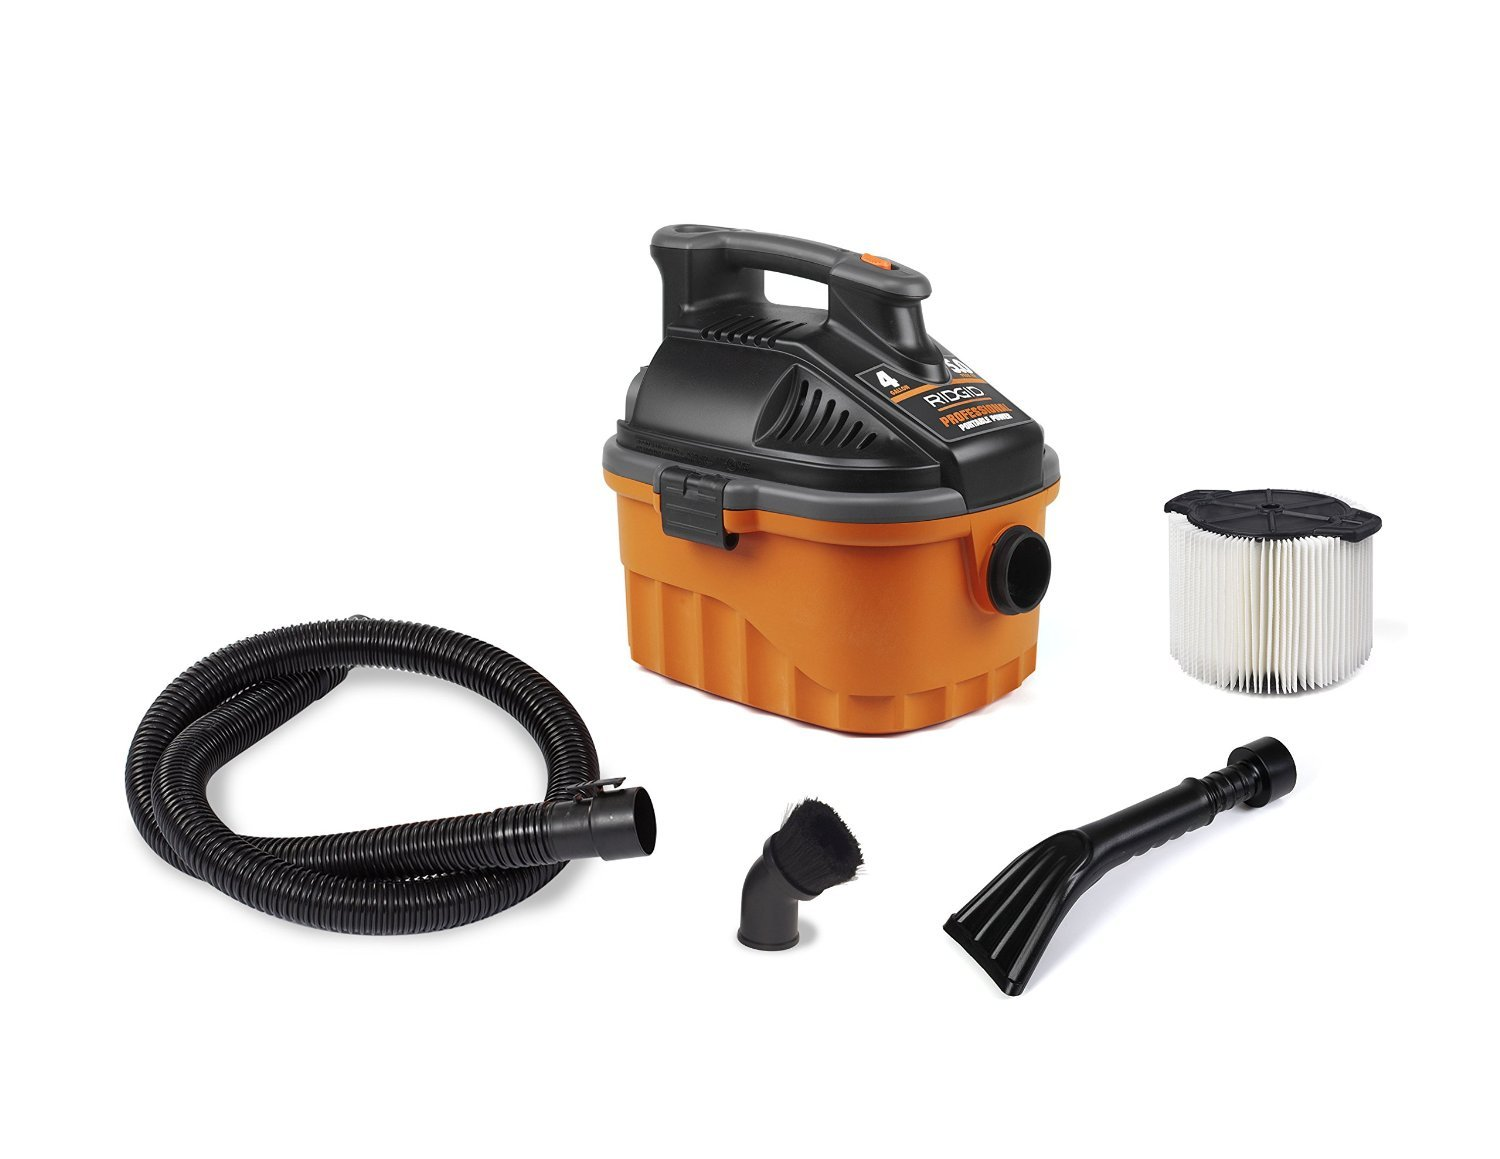 RIDGID Wet Dry Vacuums VAC4000 Powerful and Portable Wet Dry Vacuum Cleaner, Includes 4-Gallon, 5.0 Peak Horsepower Wet Dry Auto Vacuum Cleaner for Car, Dusting Brush, Car Nozzle, and Claw Nozzle by Ridgid